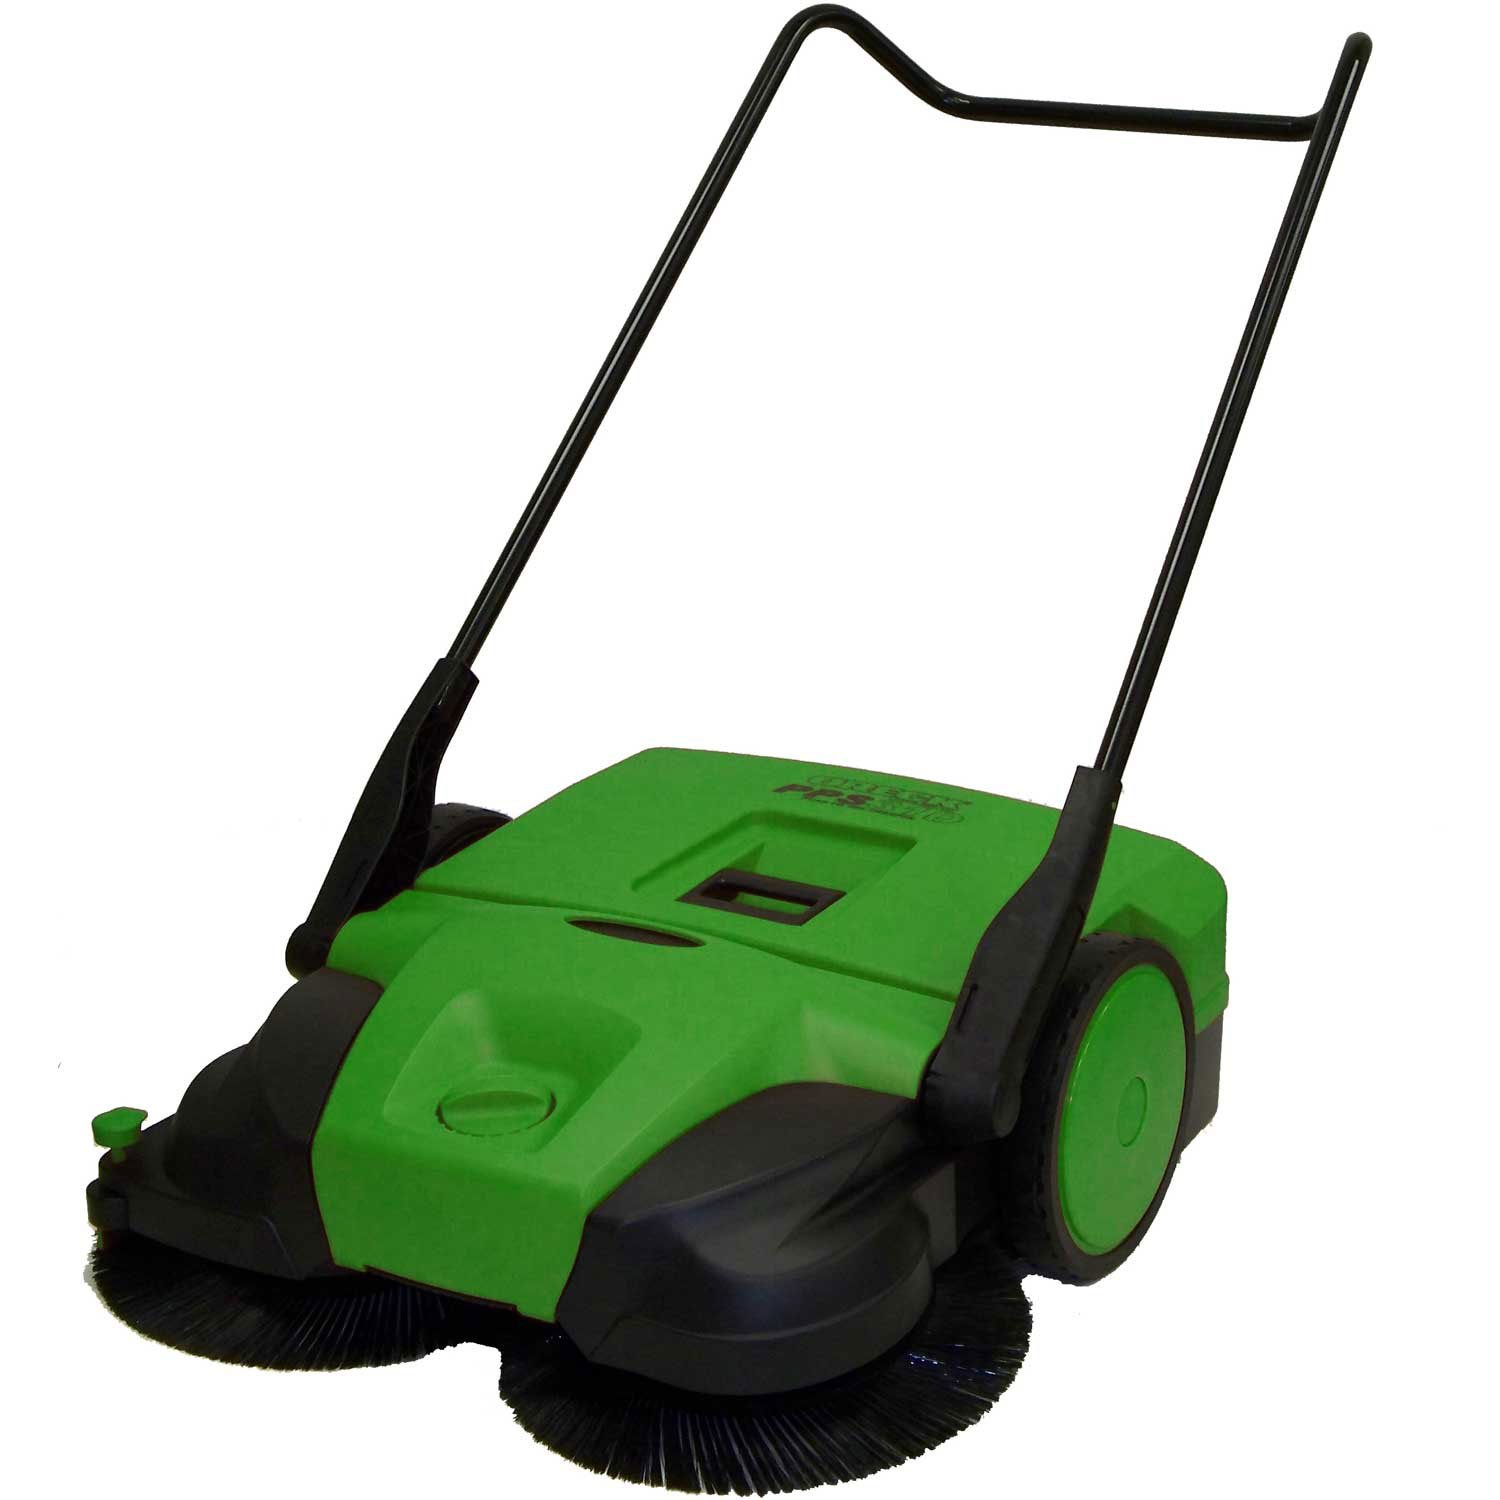 Bissell 31'' Deluxe Triple Brush Push Power Sweeper Turbo, 13.2 Gal. Capacity